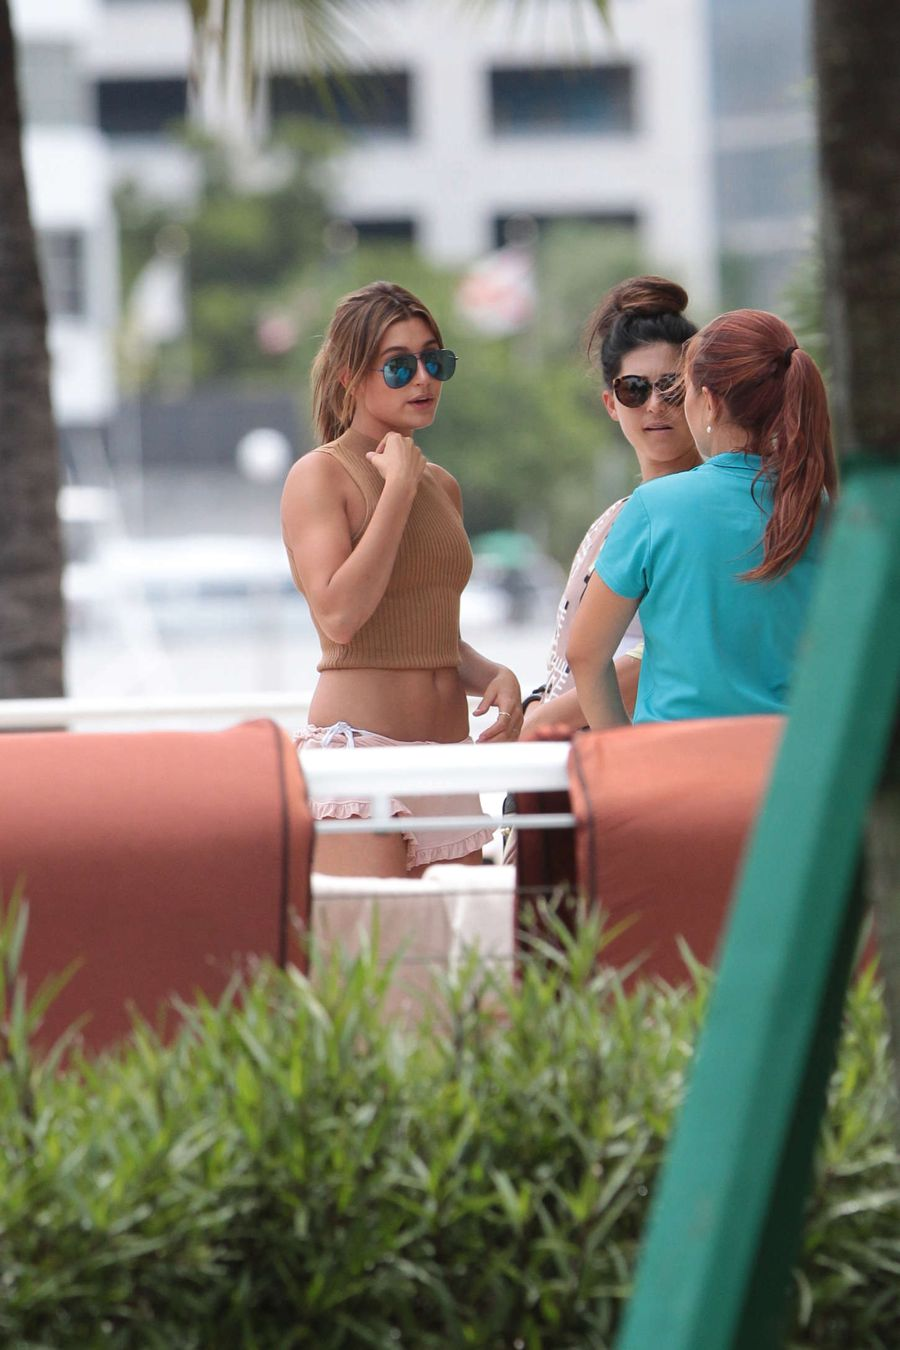 Justin Bieber's Girlfriend Hailey Baldwin in Miami